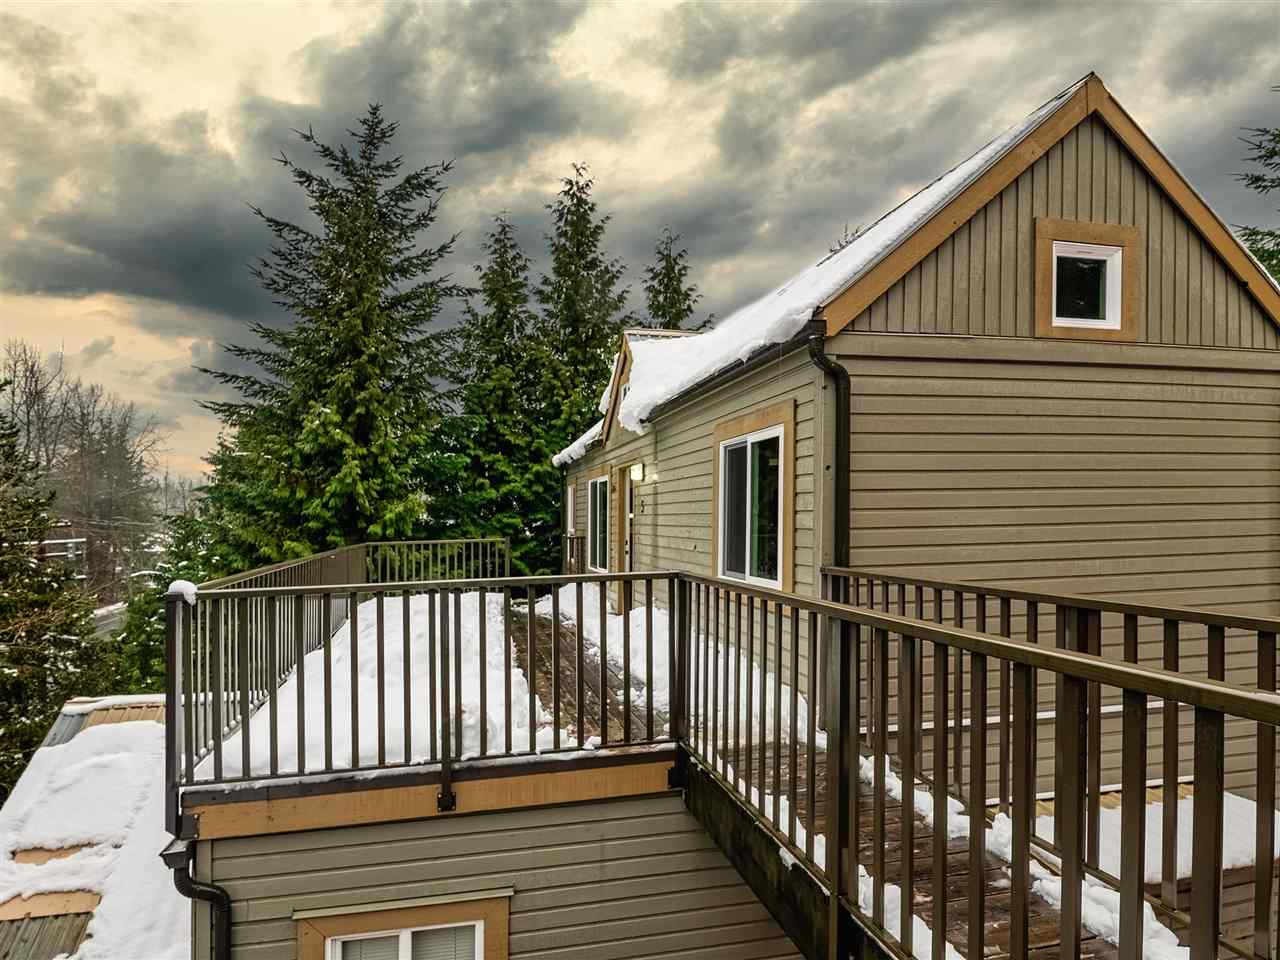 Removed: 5 - 2036 Innsbruck Drive, Whistler, BC - Removed on 2020-11-26 23:49:16